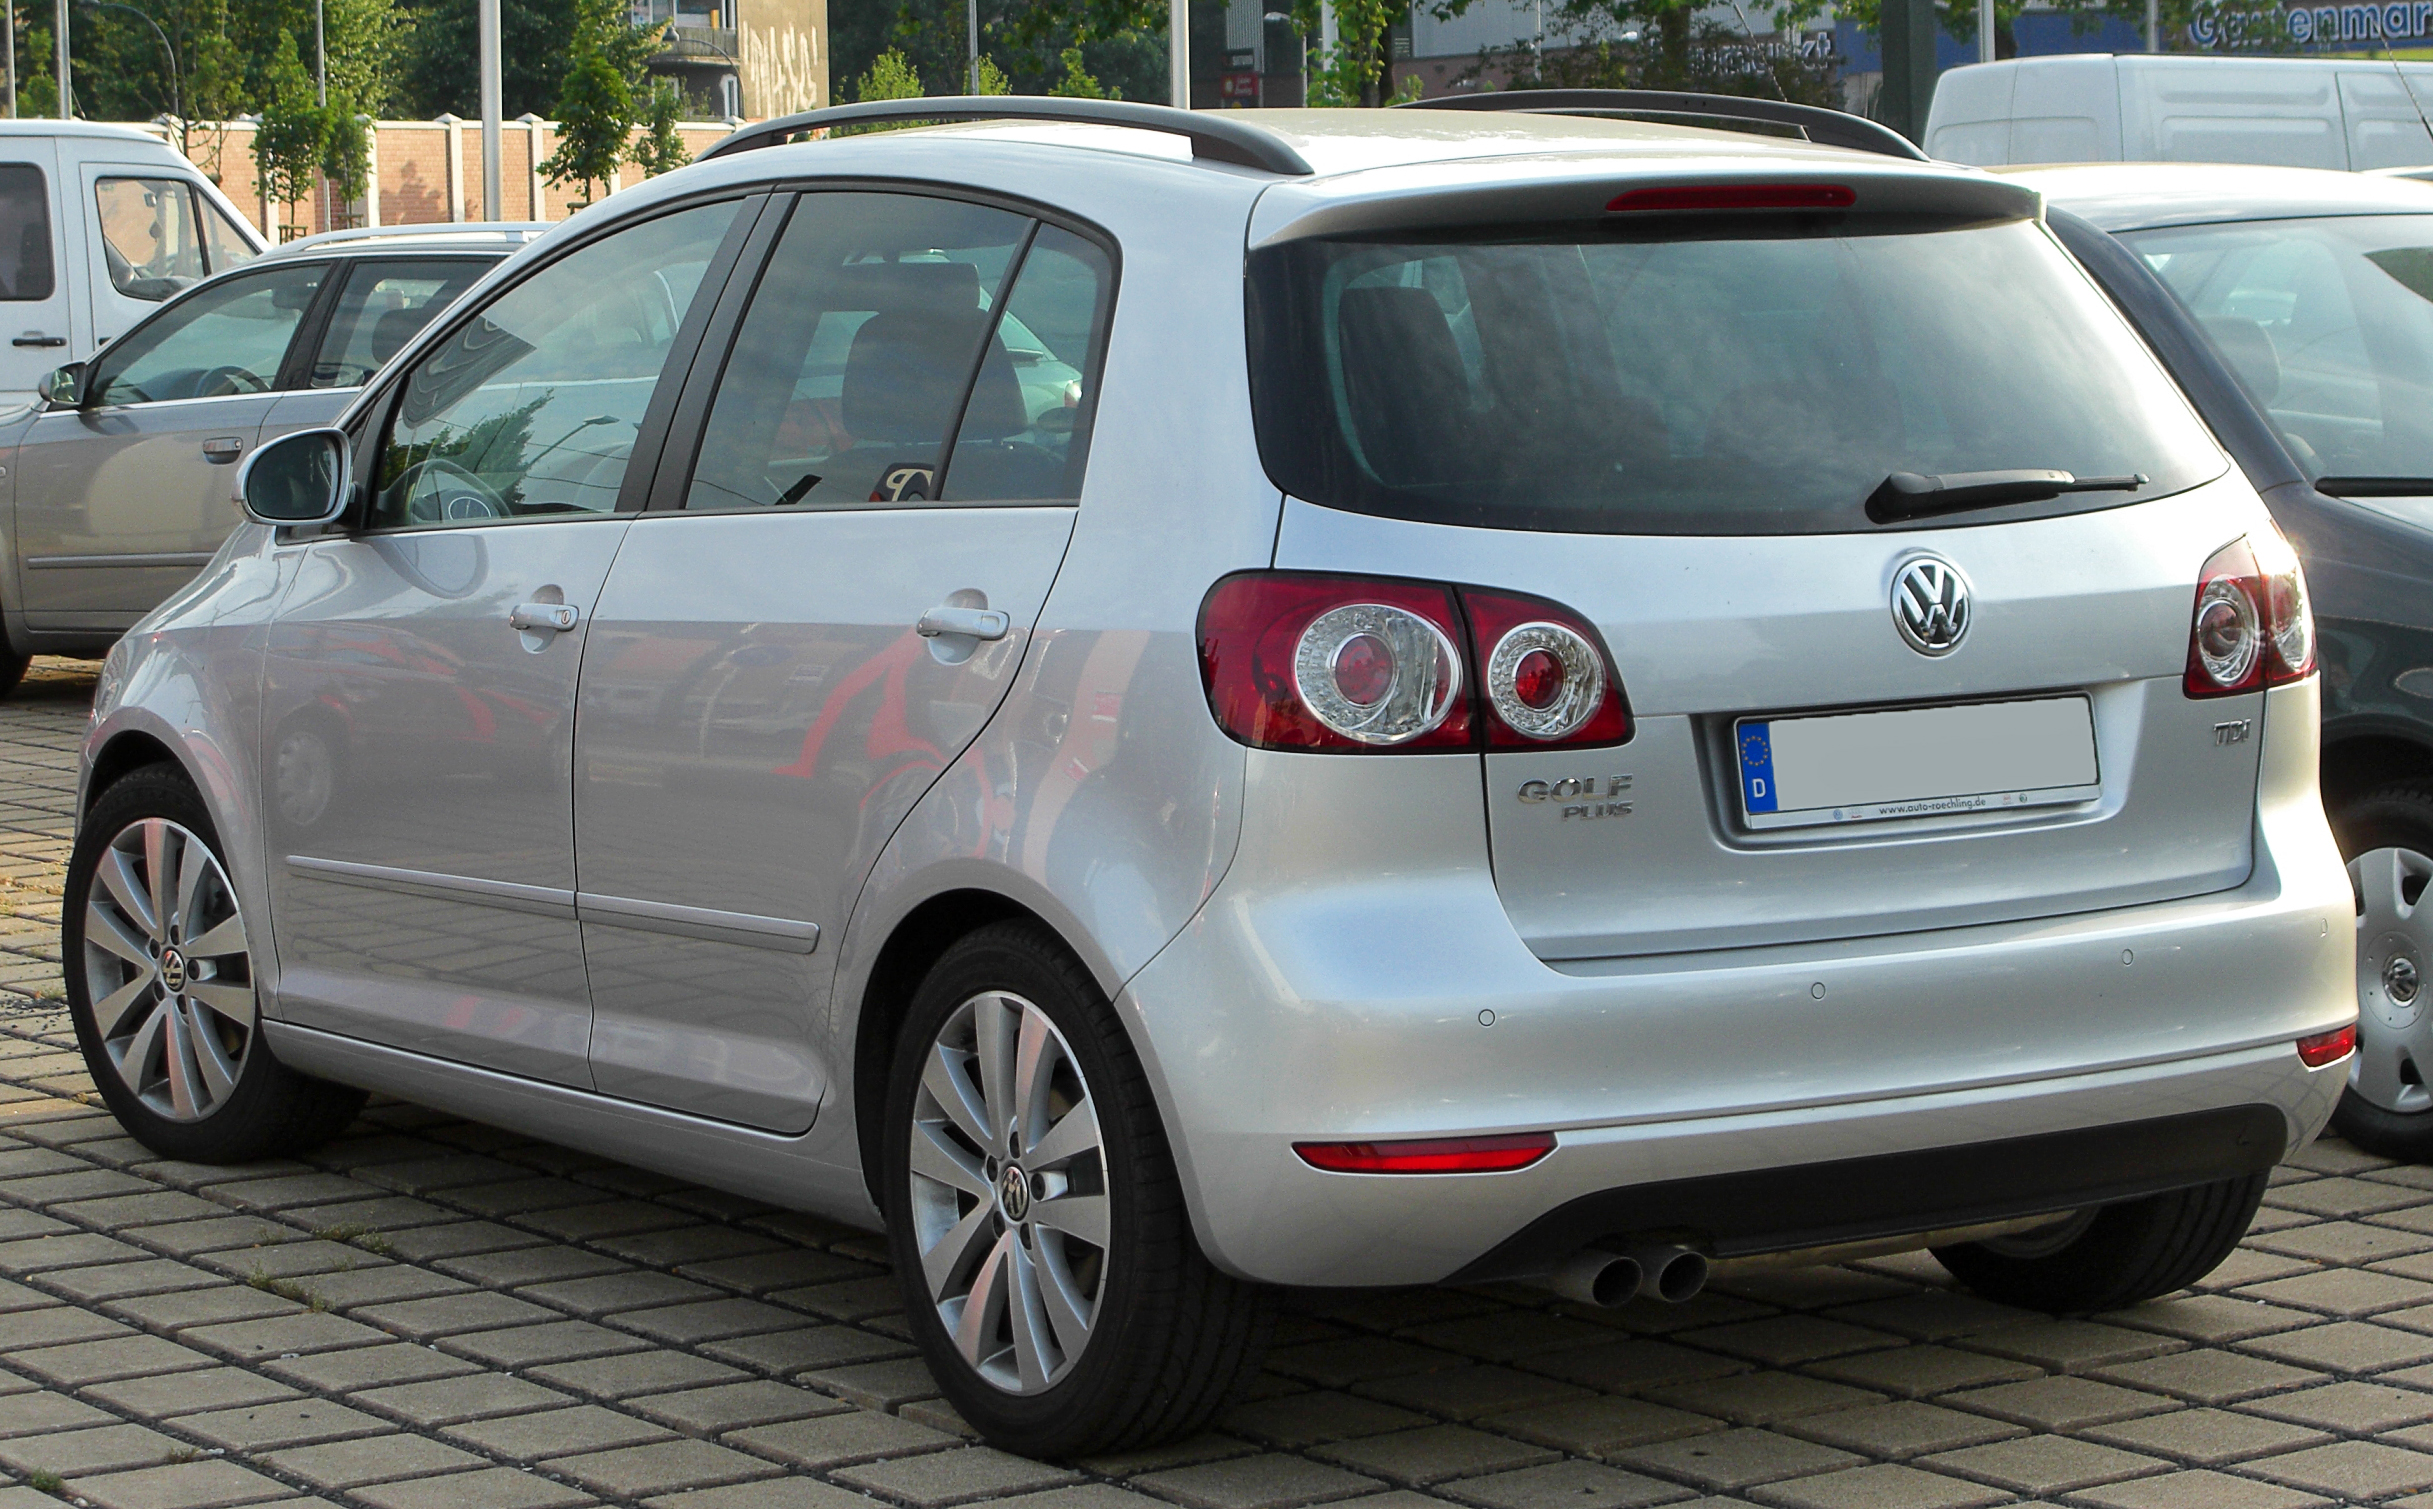 file vw golf plus 2 0 tdi facelift rear. Black Bedroom Furniture Sets. Home Design Ideas